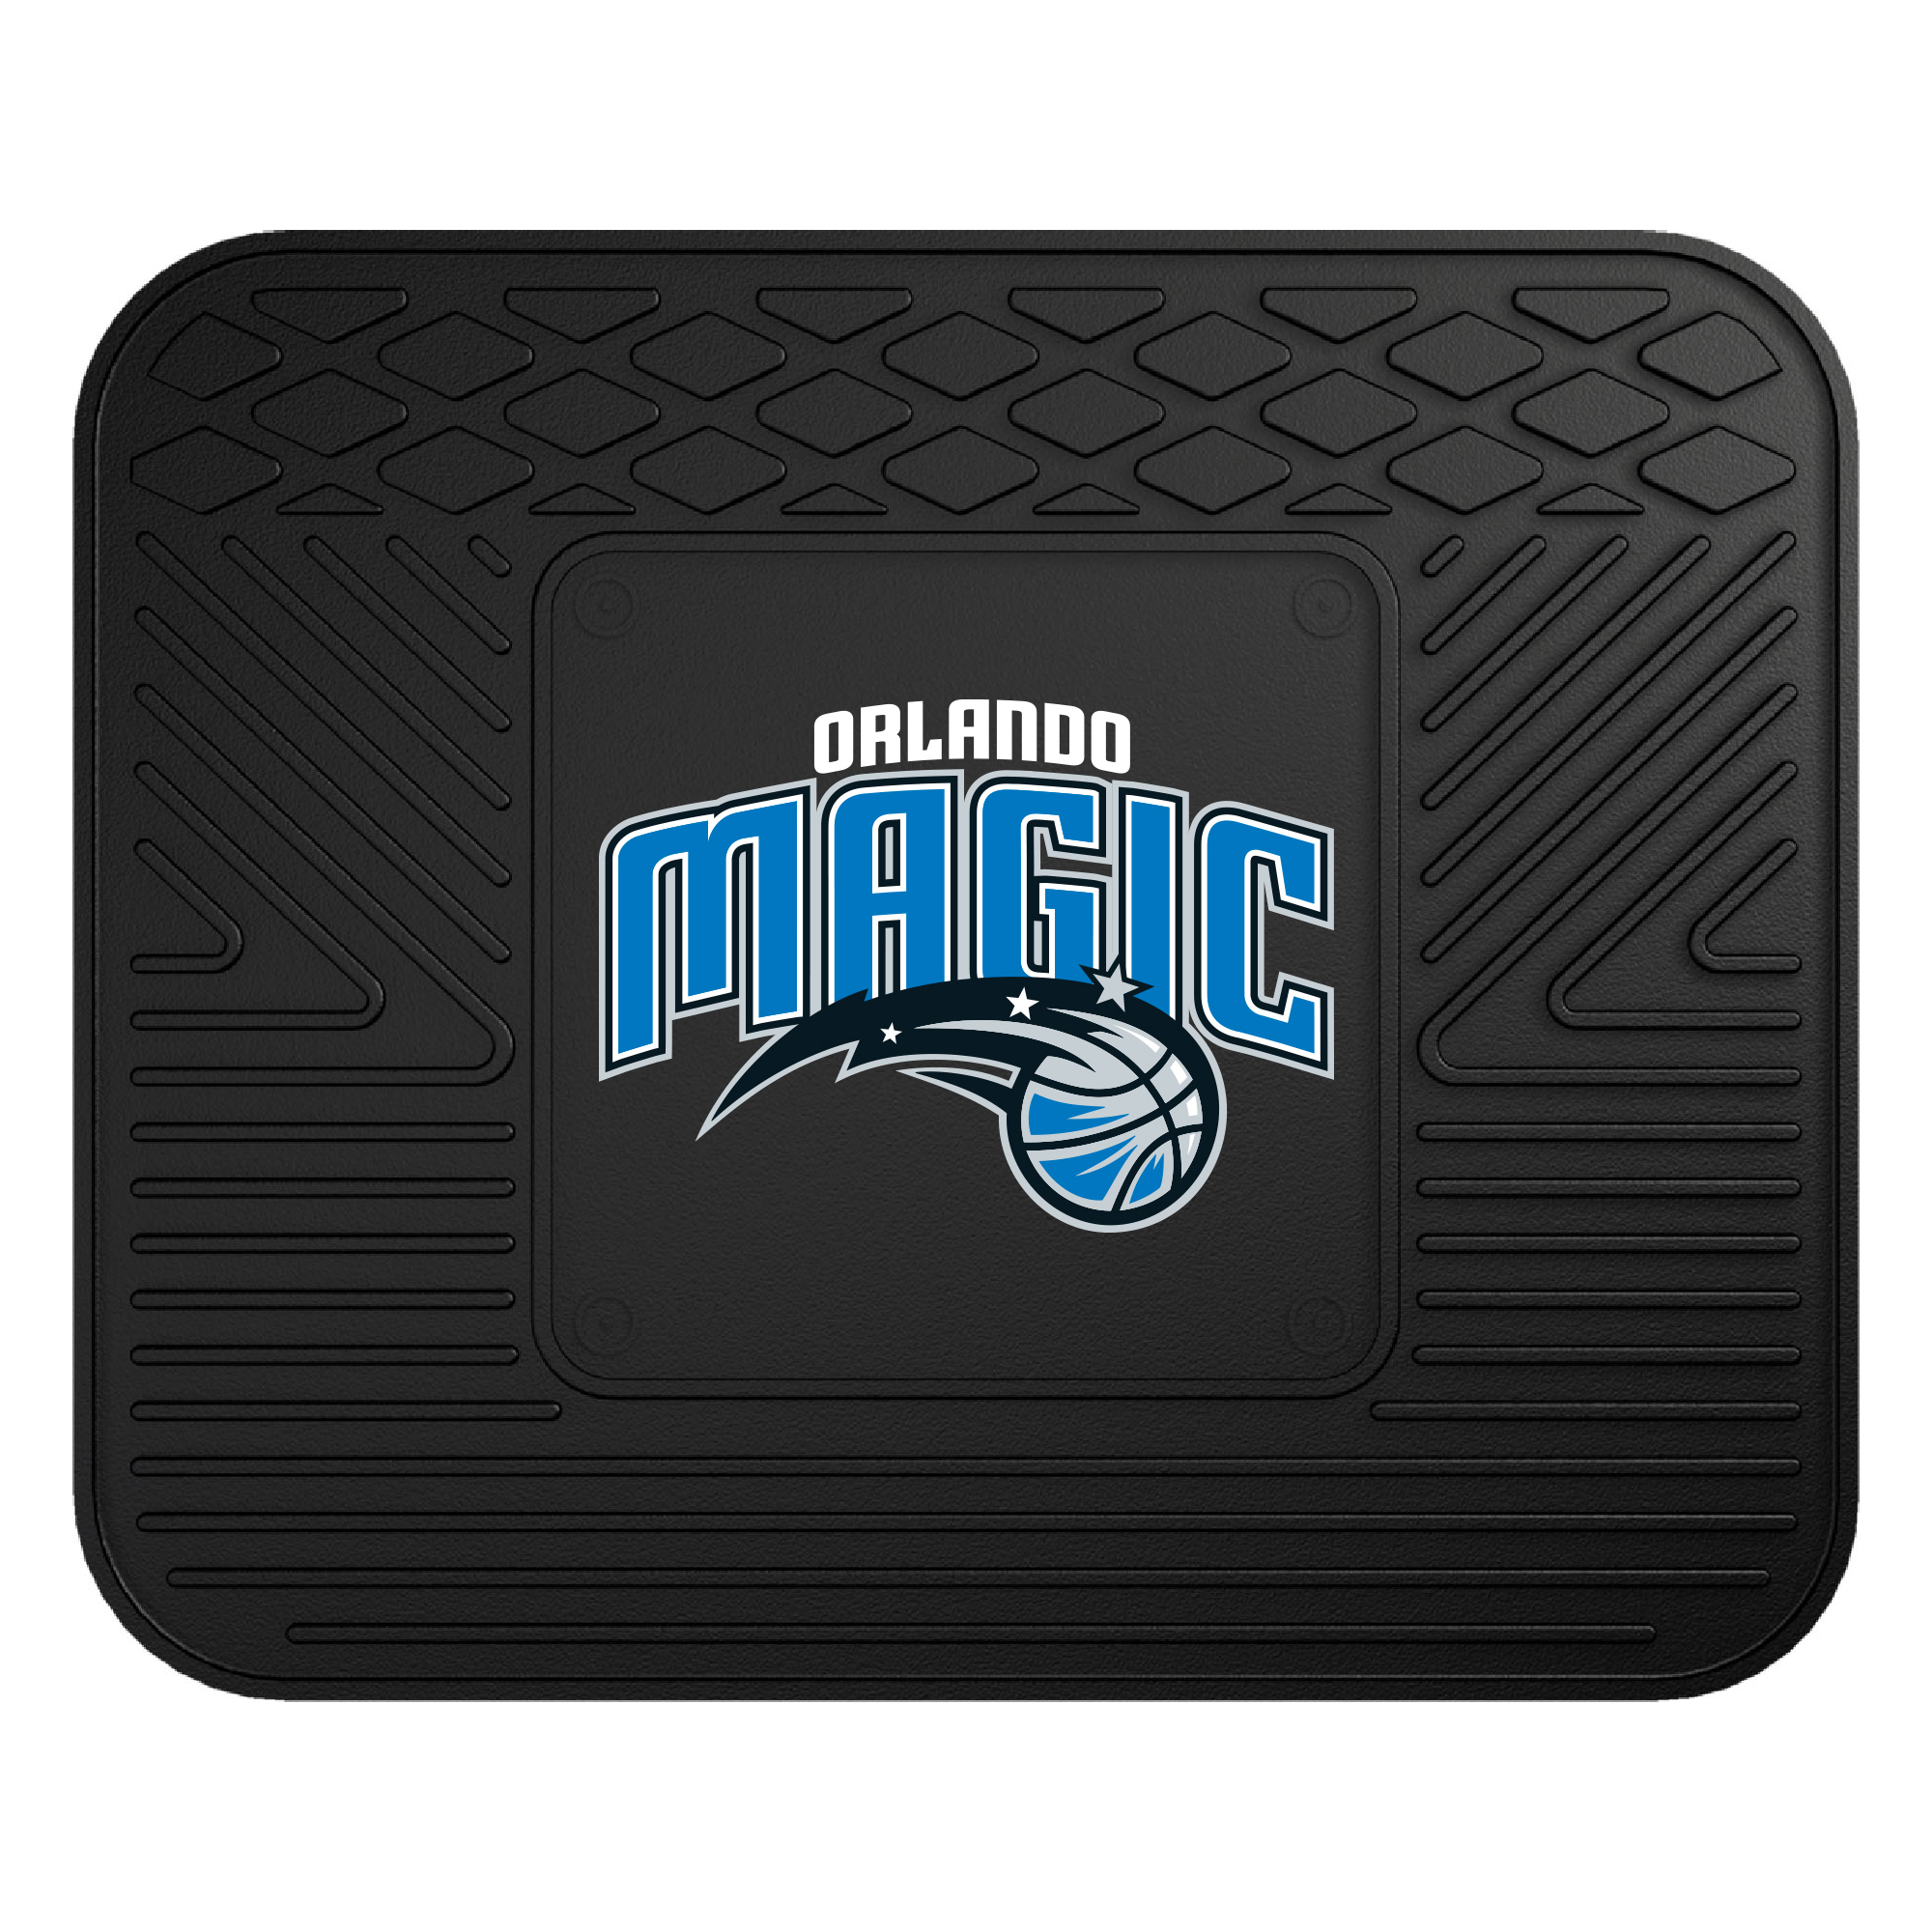 "Orlando Magic 17"" x 14"" Utility Mat - No Size"